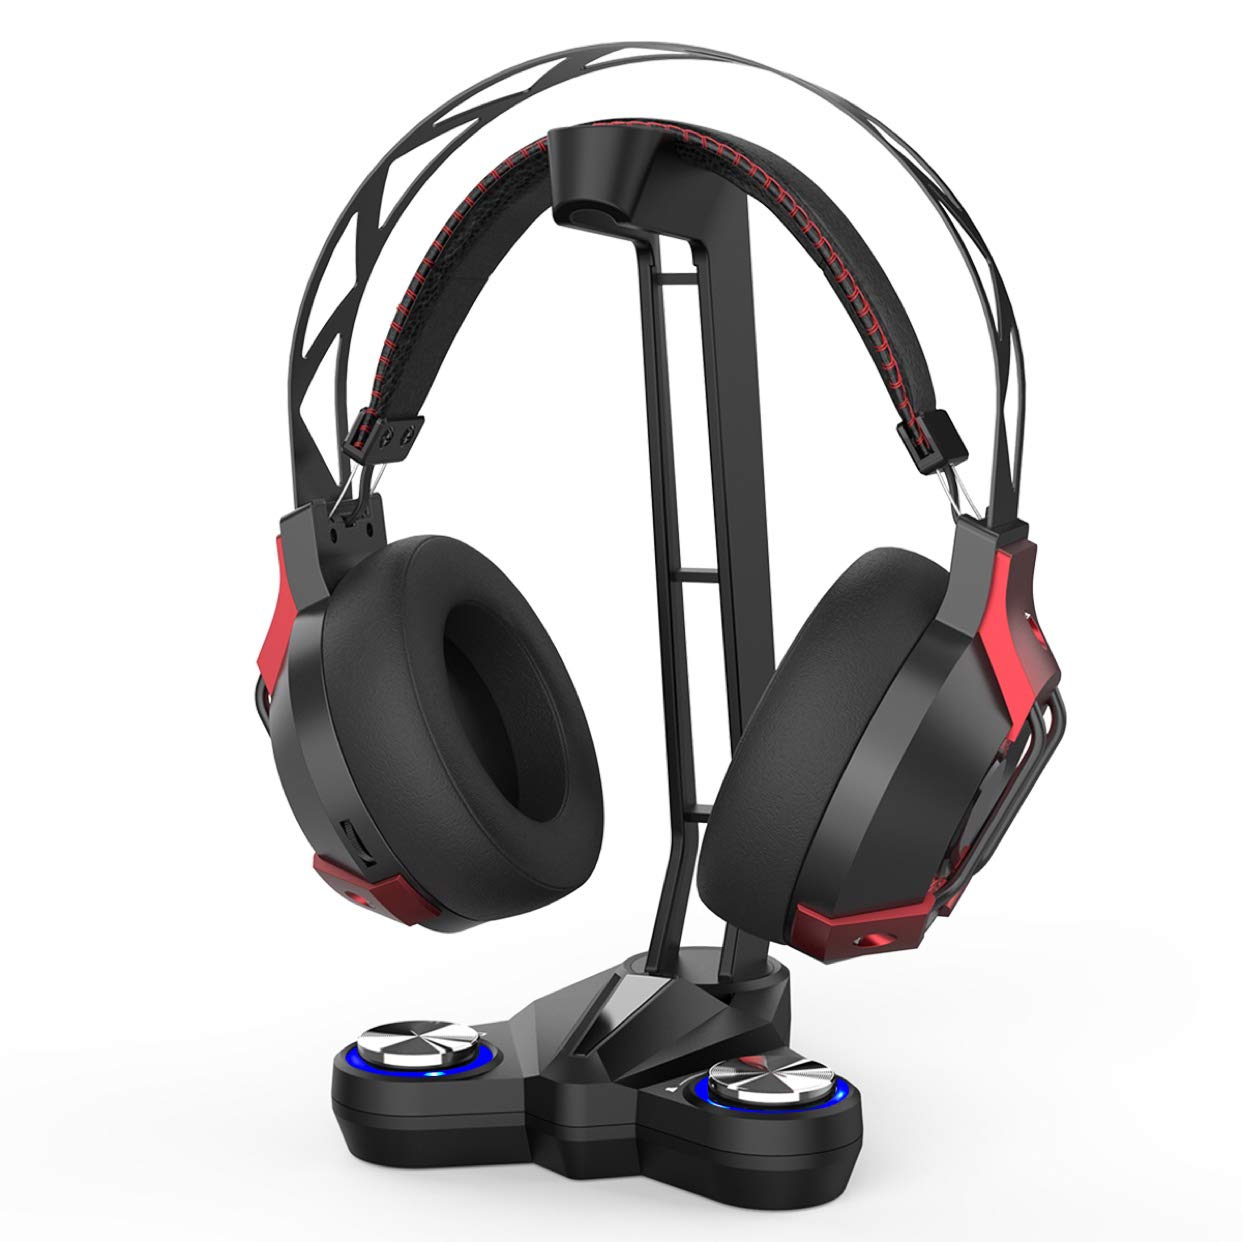 dodocool Gaming Headphones Stand Headset Stand with EQ7.1 Surround Sound, Headset Holder, LED Lights, 2 USB Ports 3.5mm Audio Jacks and a Microphone ...